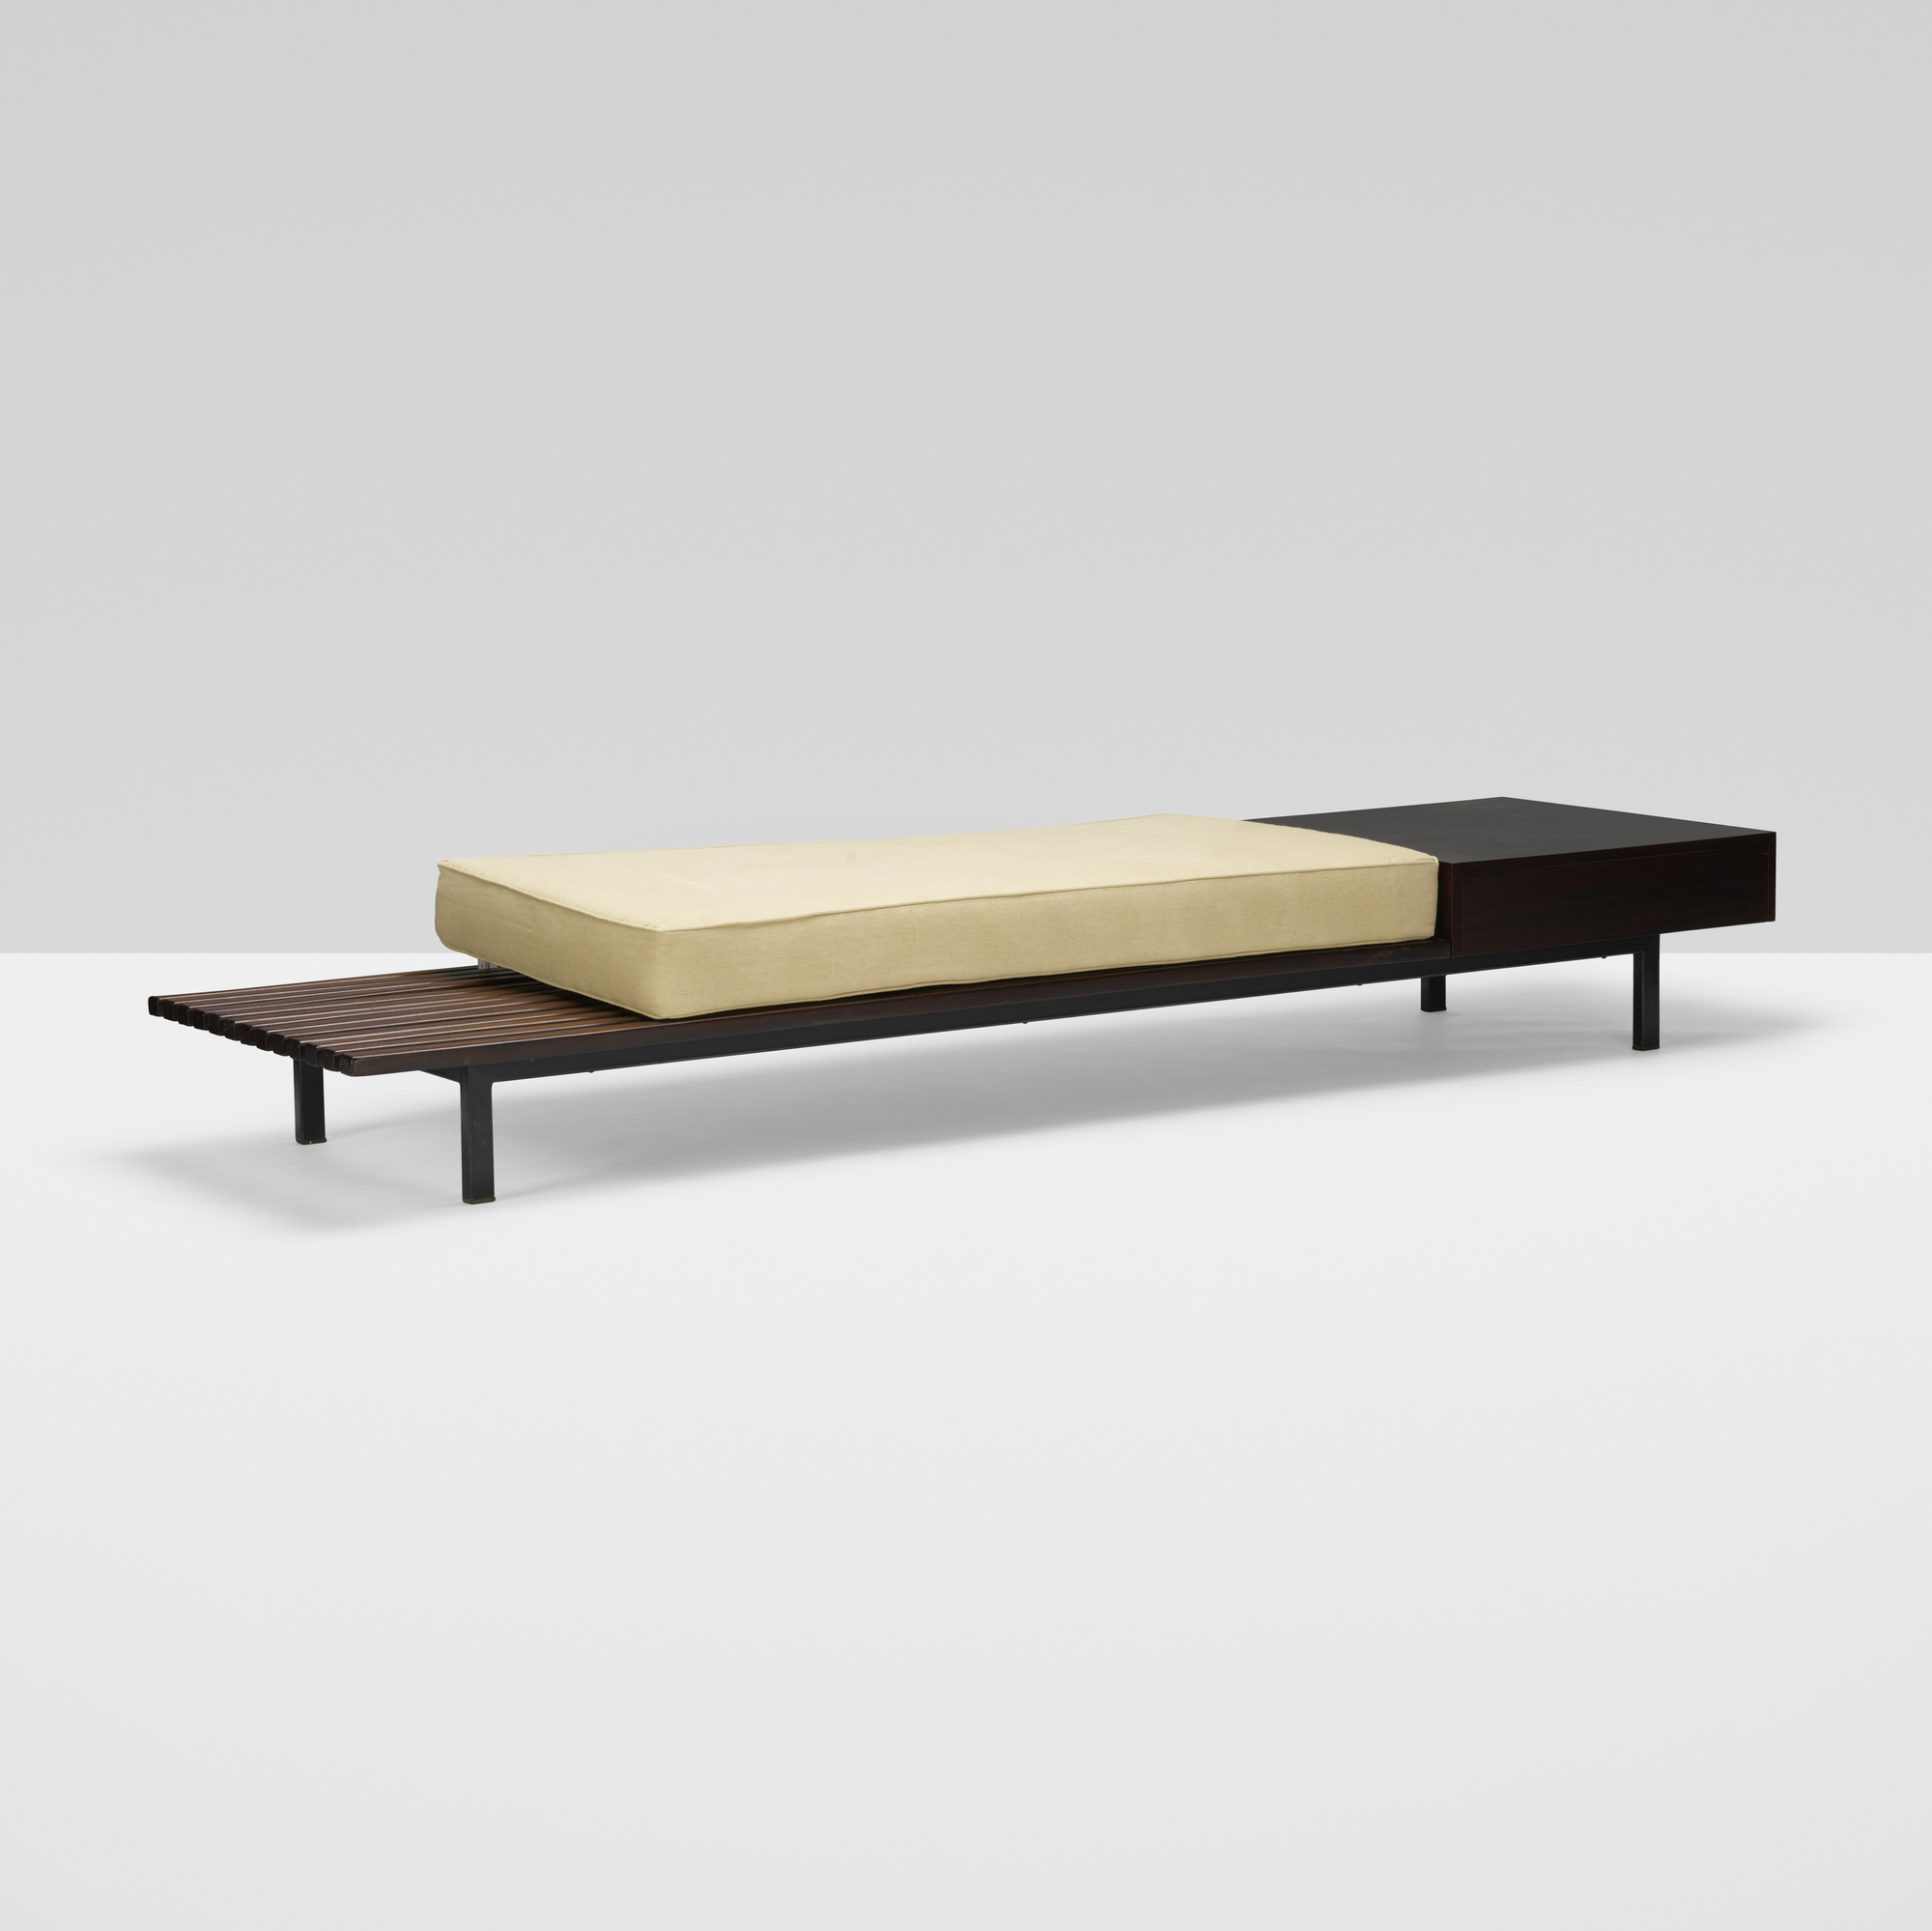 131: Charlotte Perriand / bench from Cité Cansado, Mauritania (2 of 3)